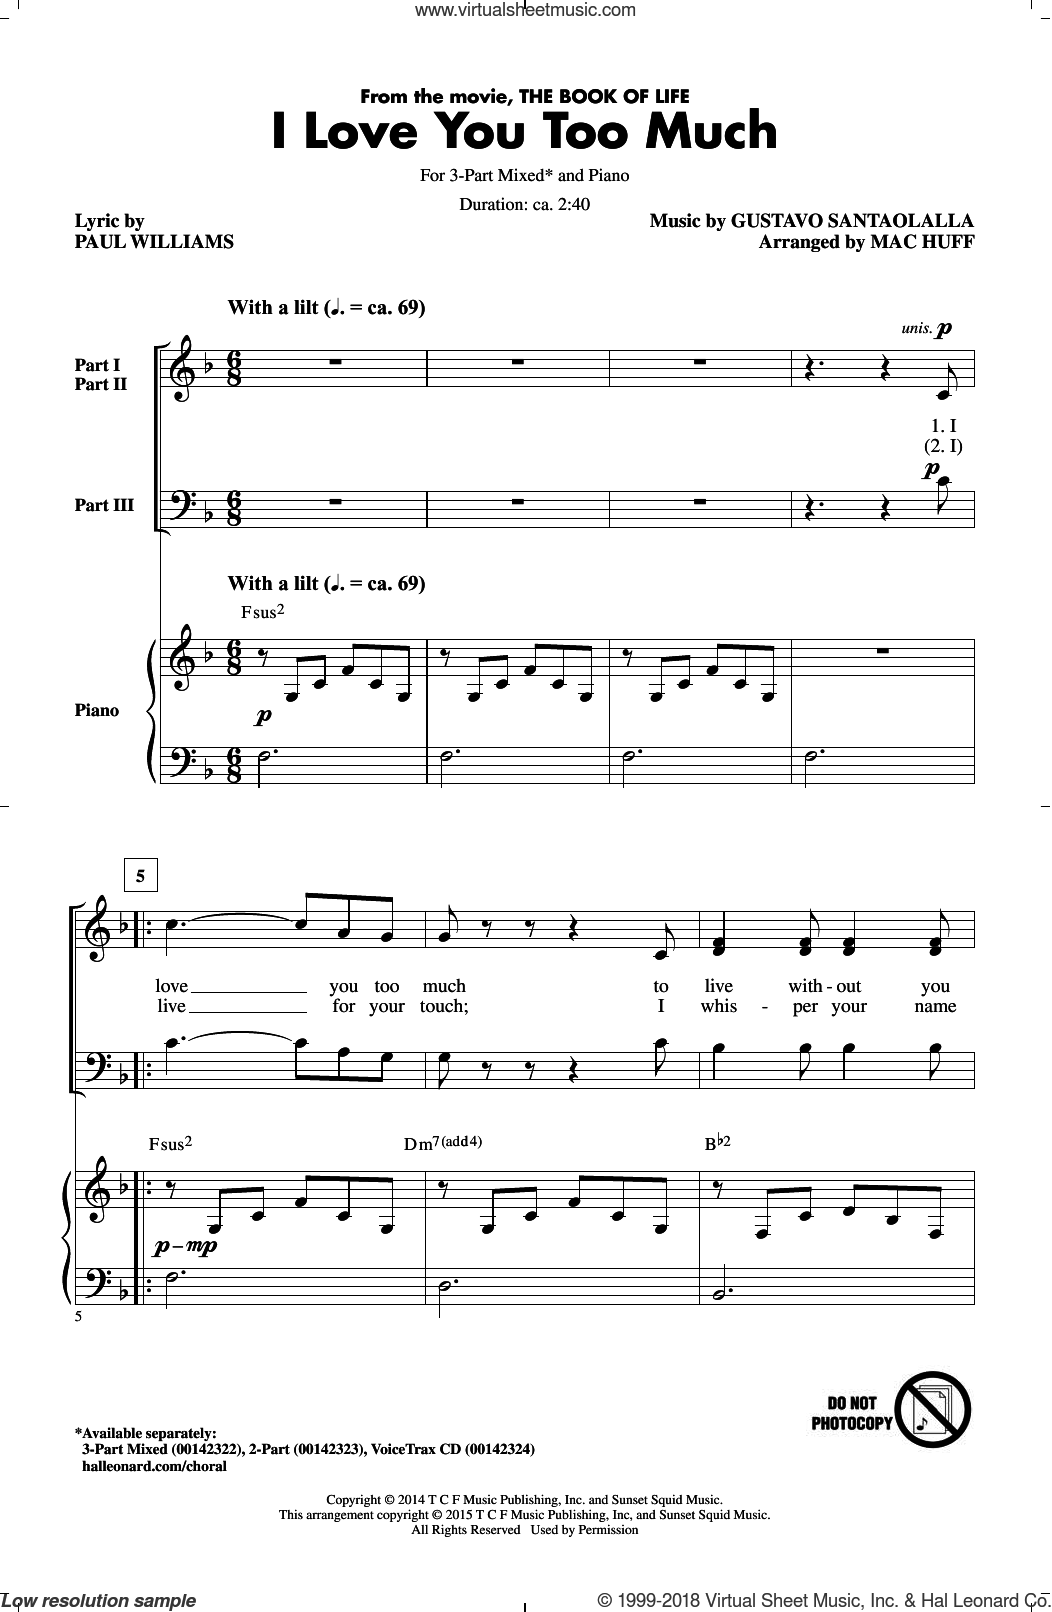 I Love You Too Much sheet music for choir (3-Part Mixed) by Paul Williams, Mac Huff, Diego Luna and Gustavo Santaolalla, intermediate skill level